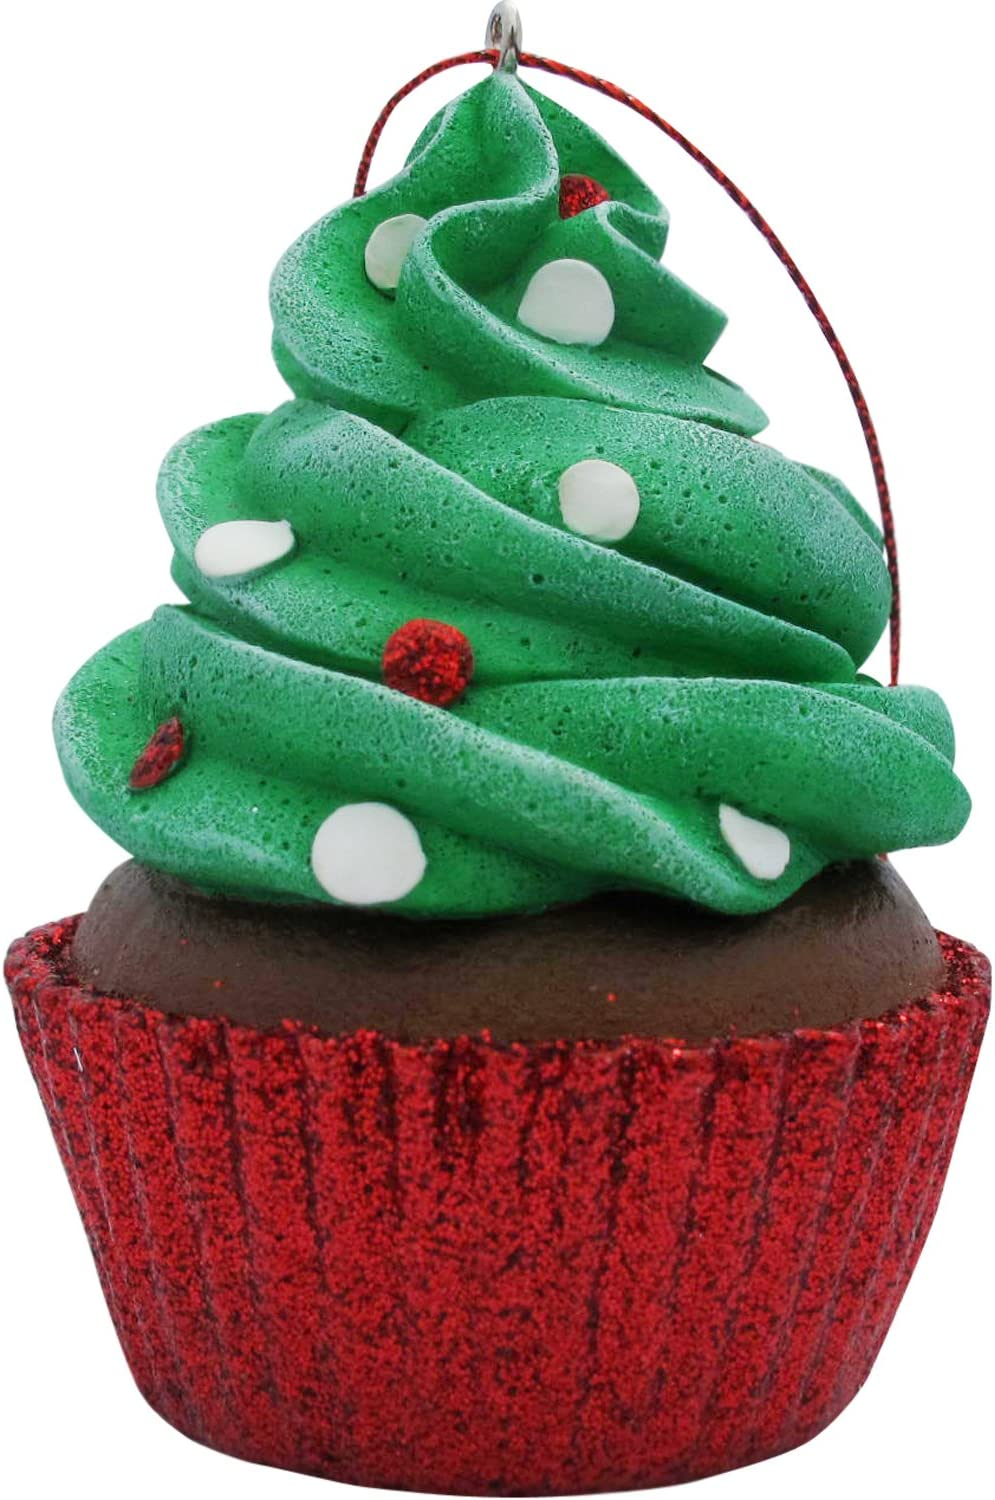 JILLSON & ROBERTS Green Confetti Cupcake Christmas Tree Ornament